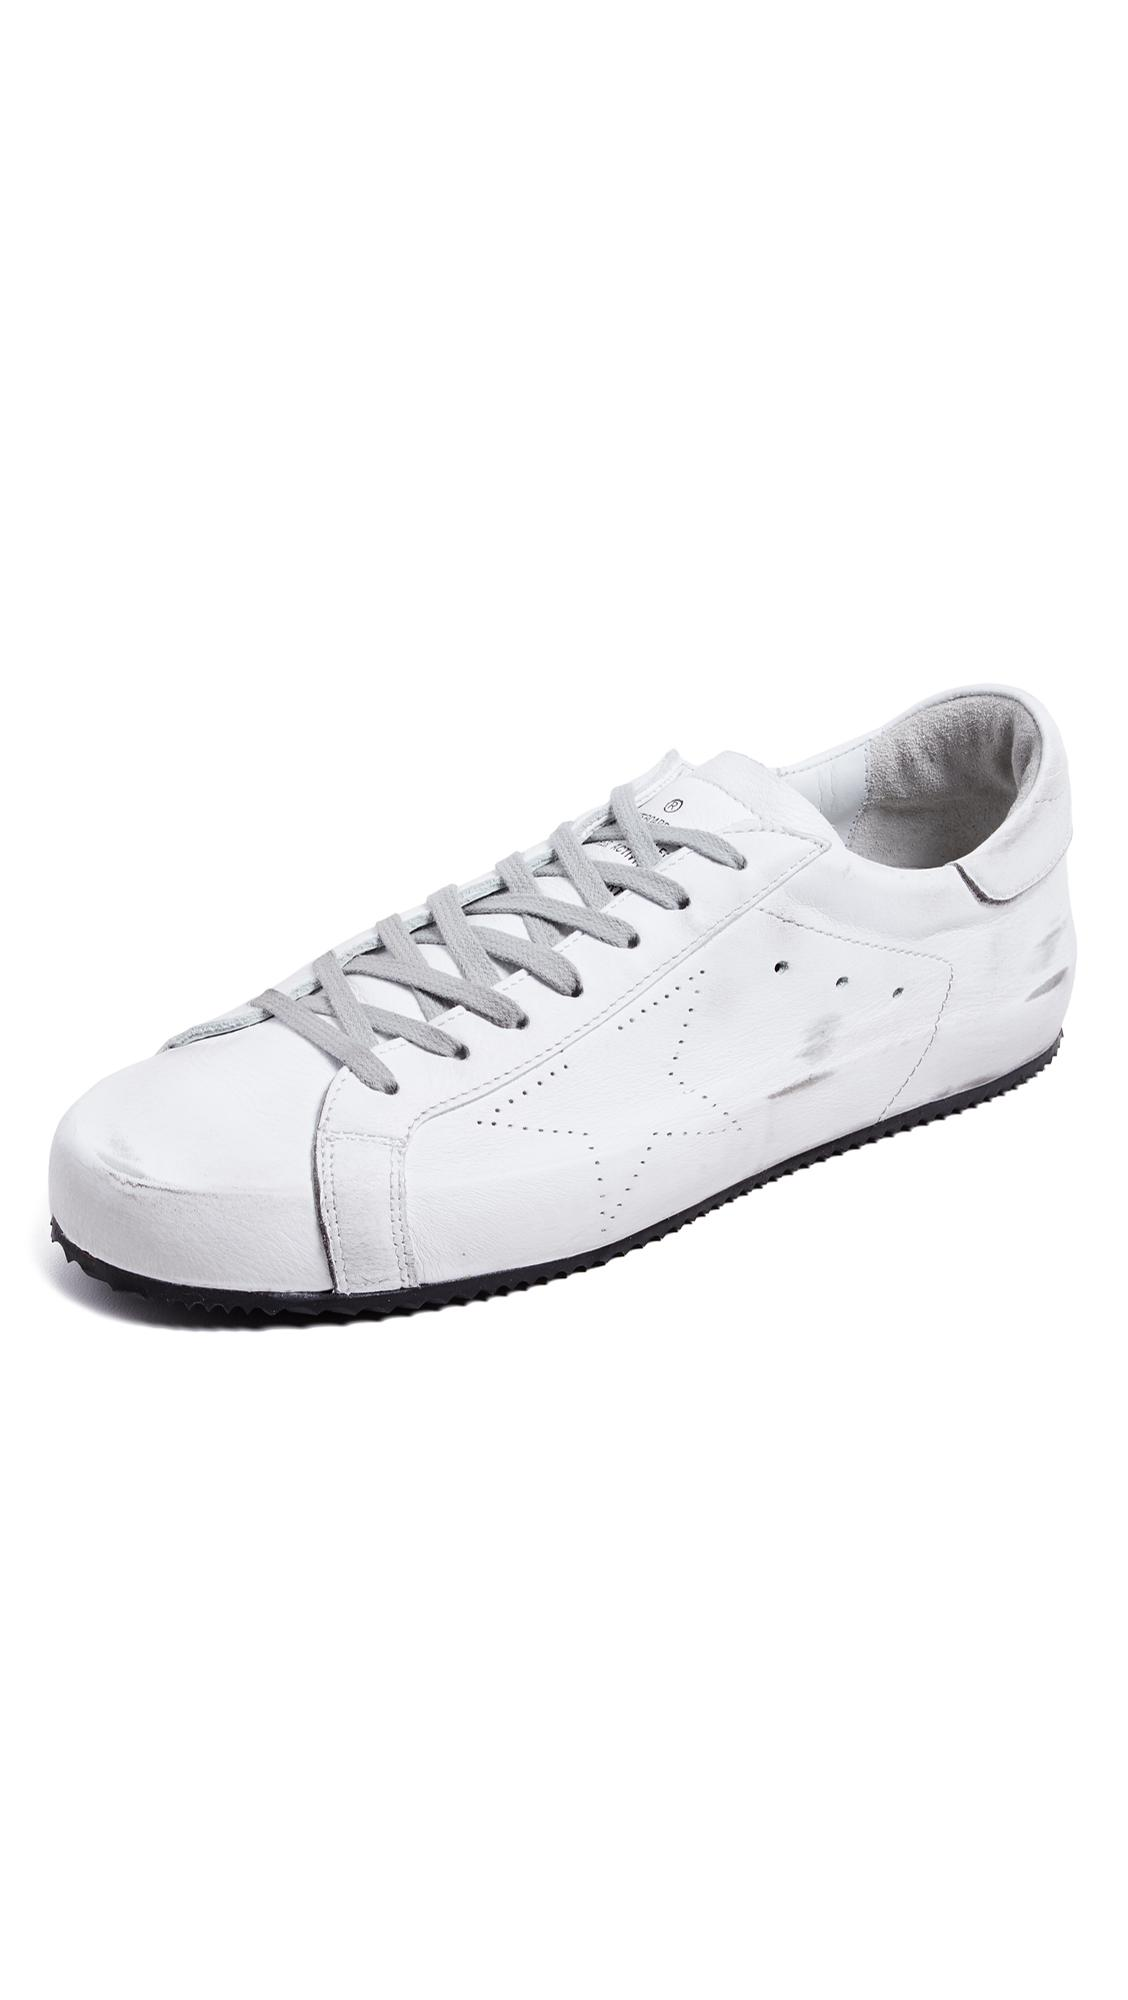 Golden Goose Superstar Future Sneakers Cost Clearance Wiki Classic Cheap Online VS8K4vXX